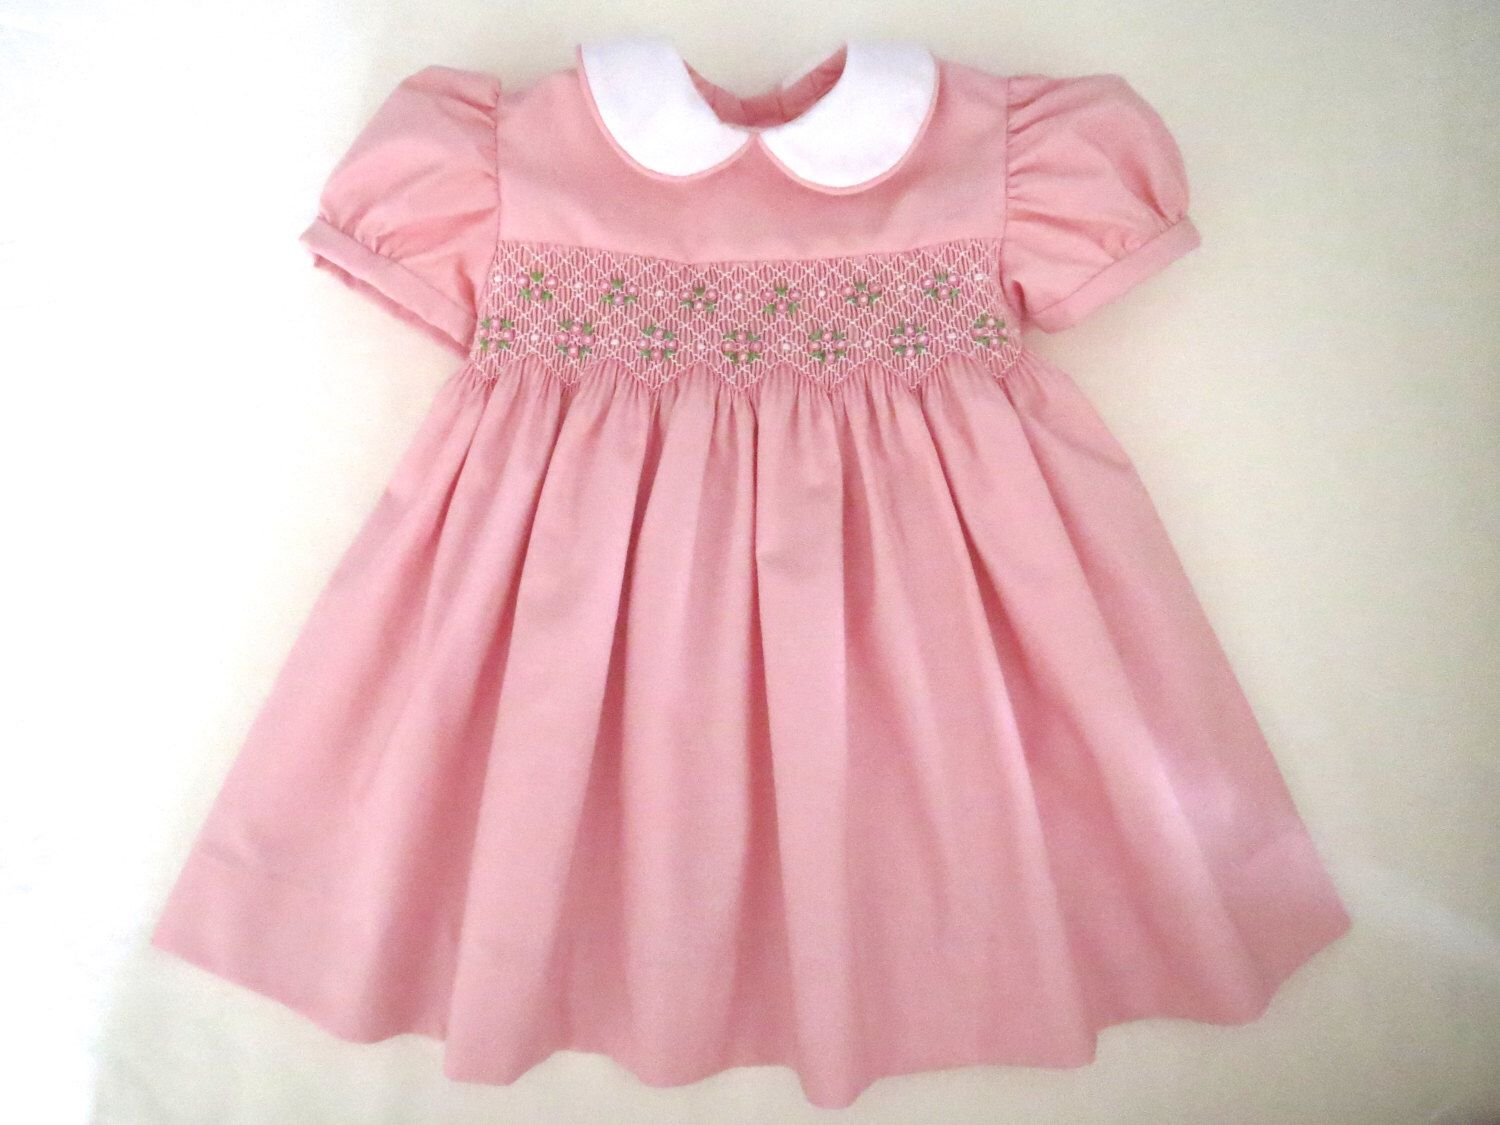 28bd0ba3a Lovely Light Pink and White Hand Smocked Dress for Baby Girl ...